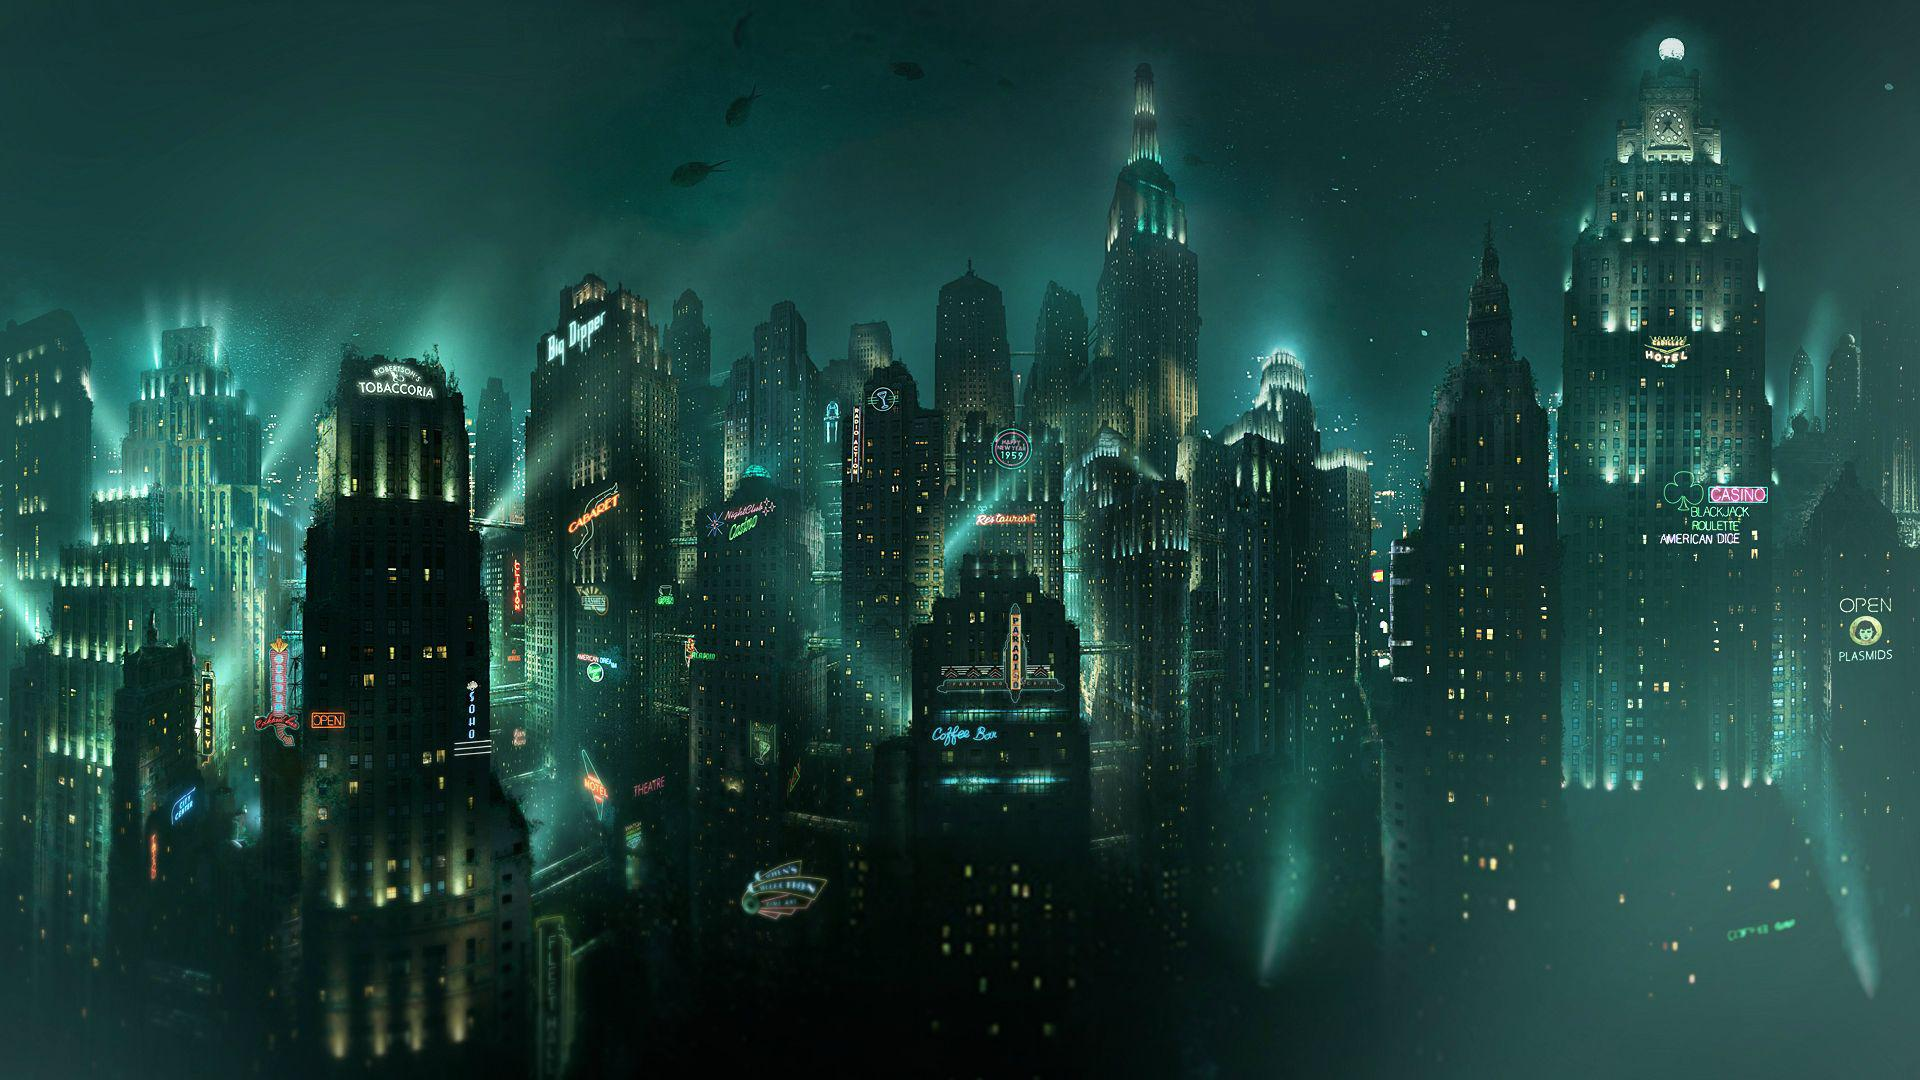 Rapture Wallpaper 1920x1080 Also works as a Facebook cover 1920x1080